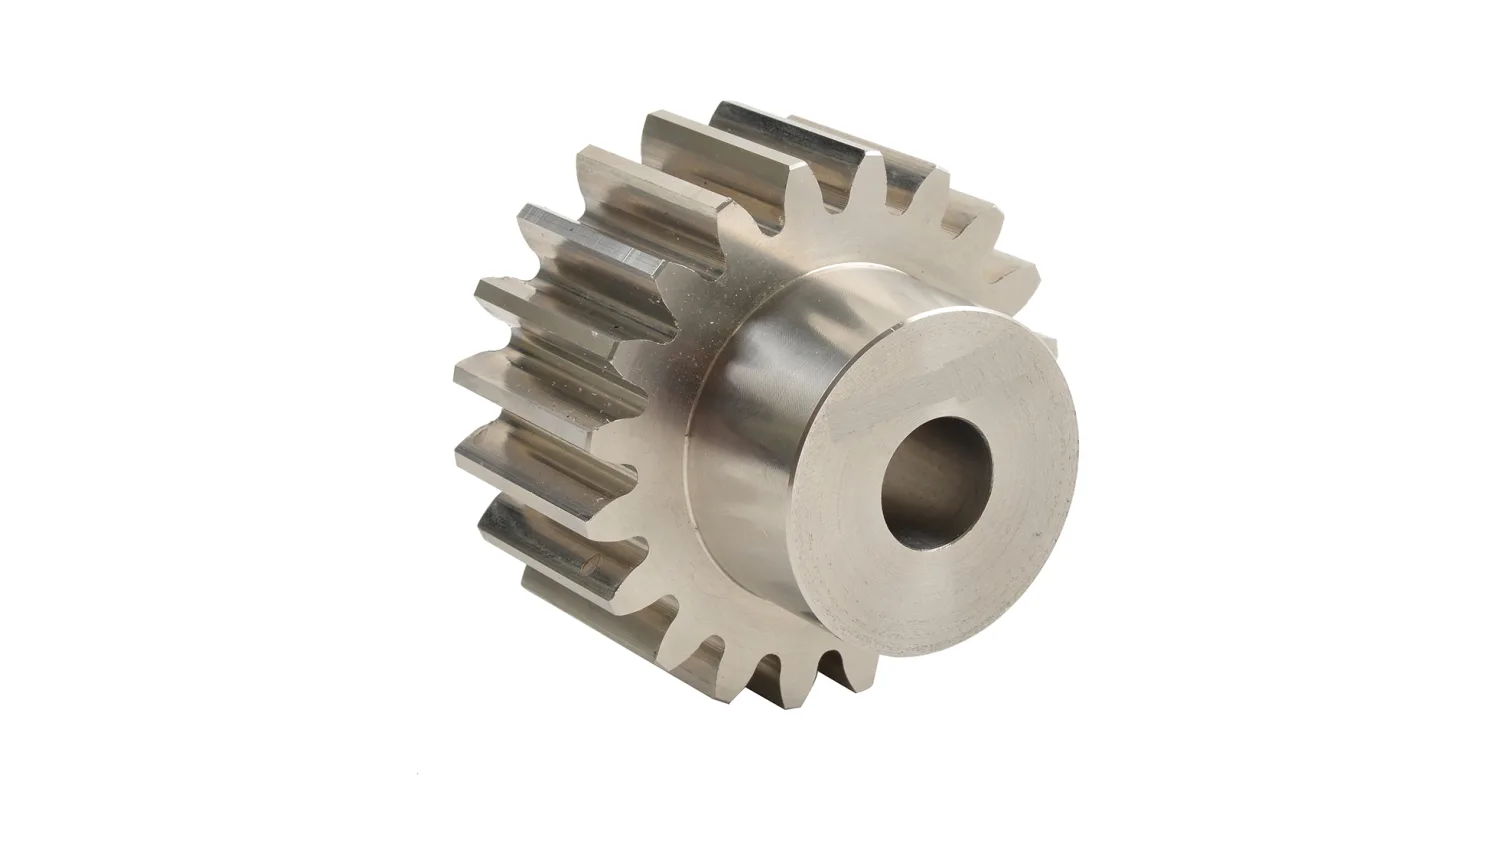 3-Mod-x-23-Tooth-Metric-Spur-Gear-in-Steel